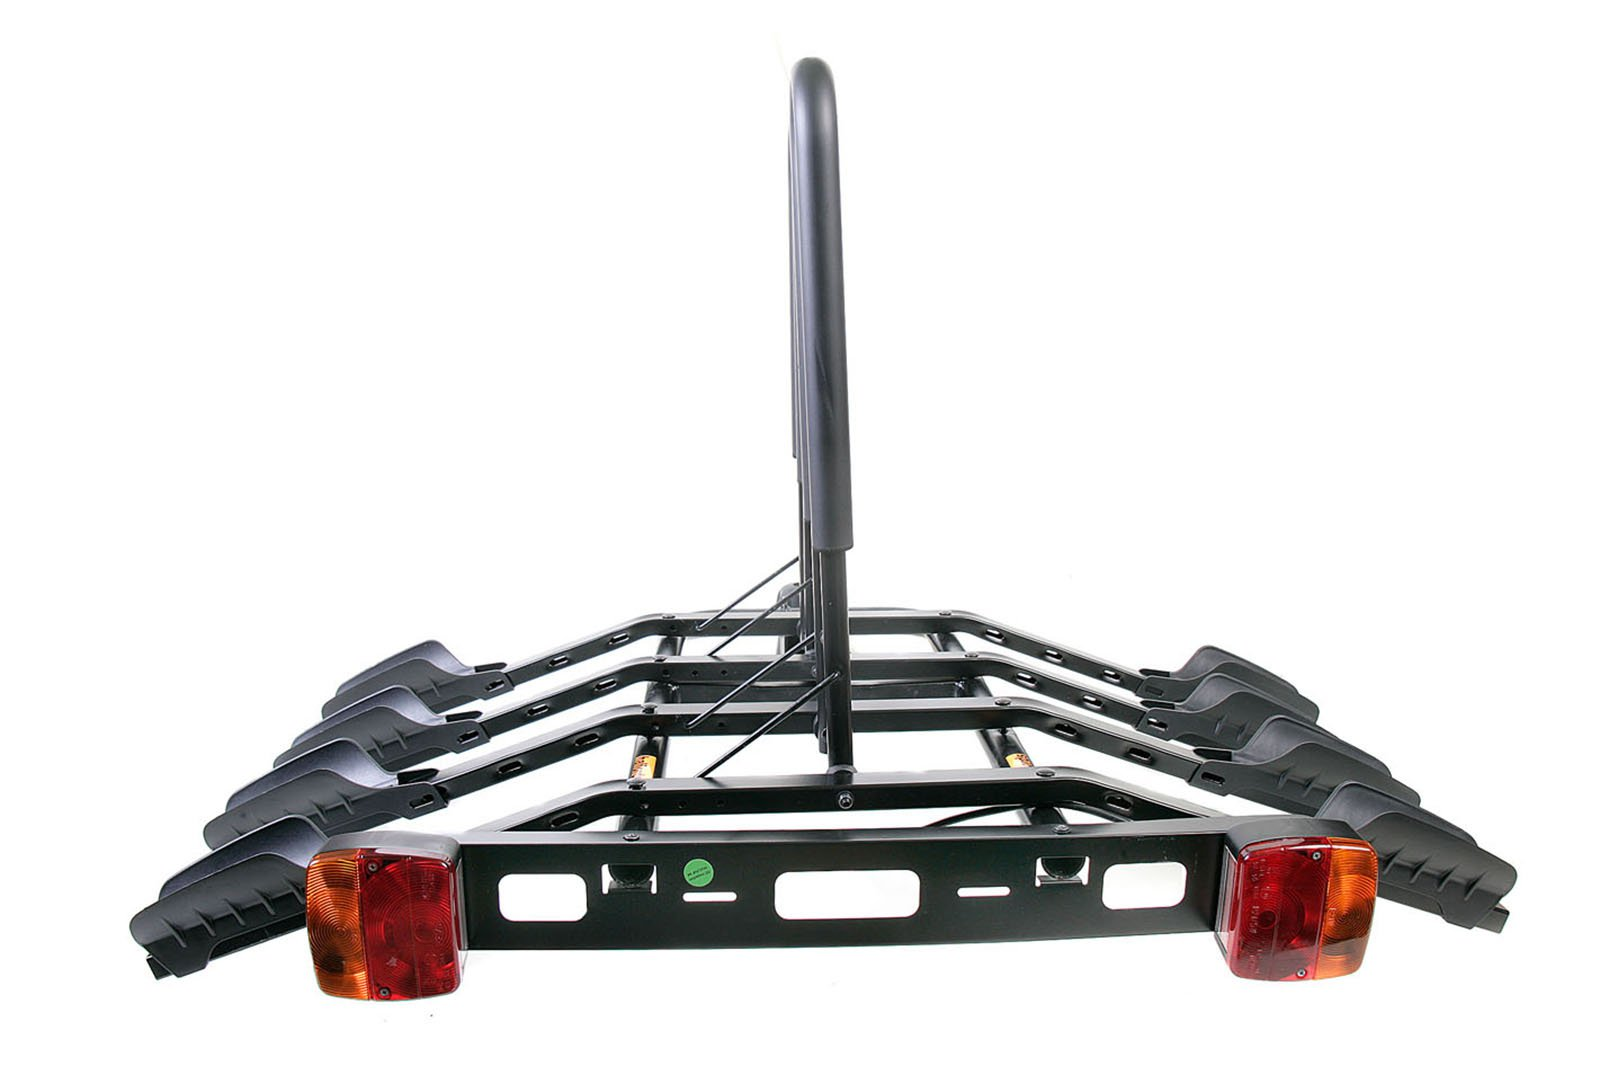 Halfords 4 Bike Tow Bar Cycle Carrier – Main Image